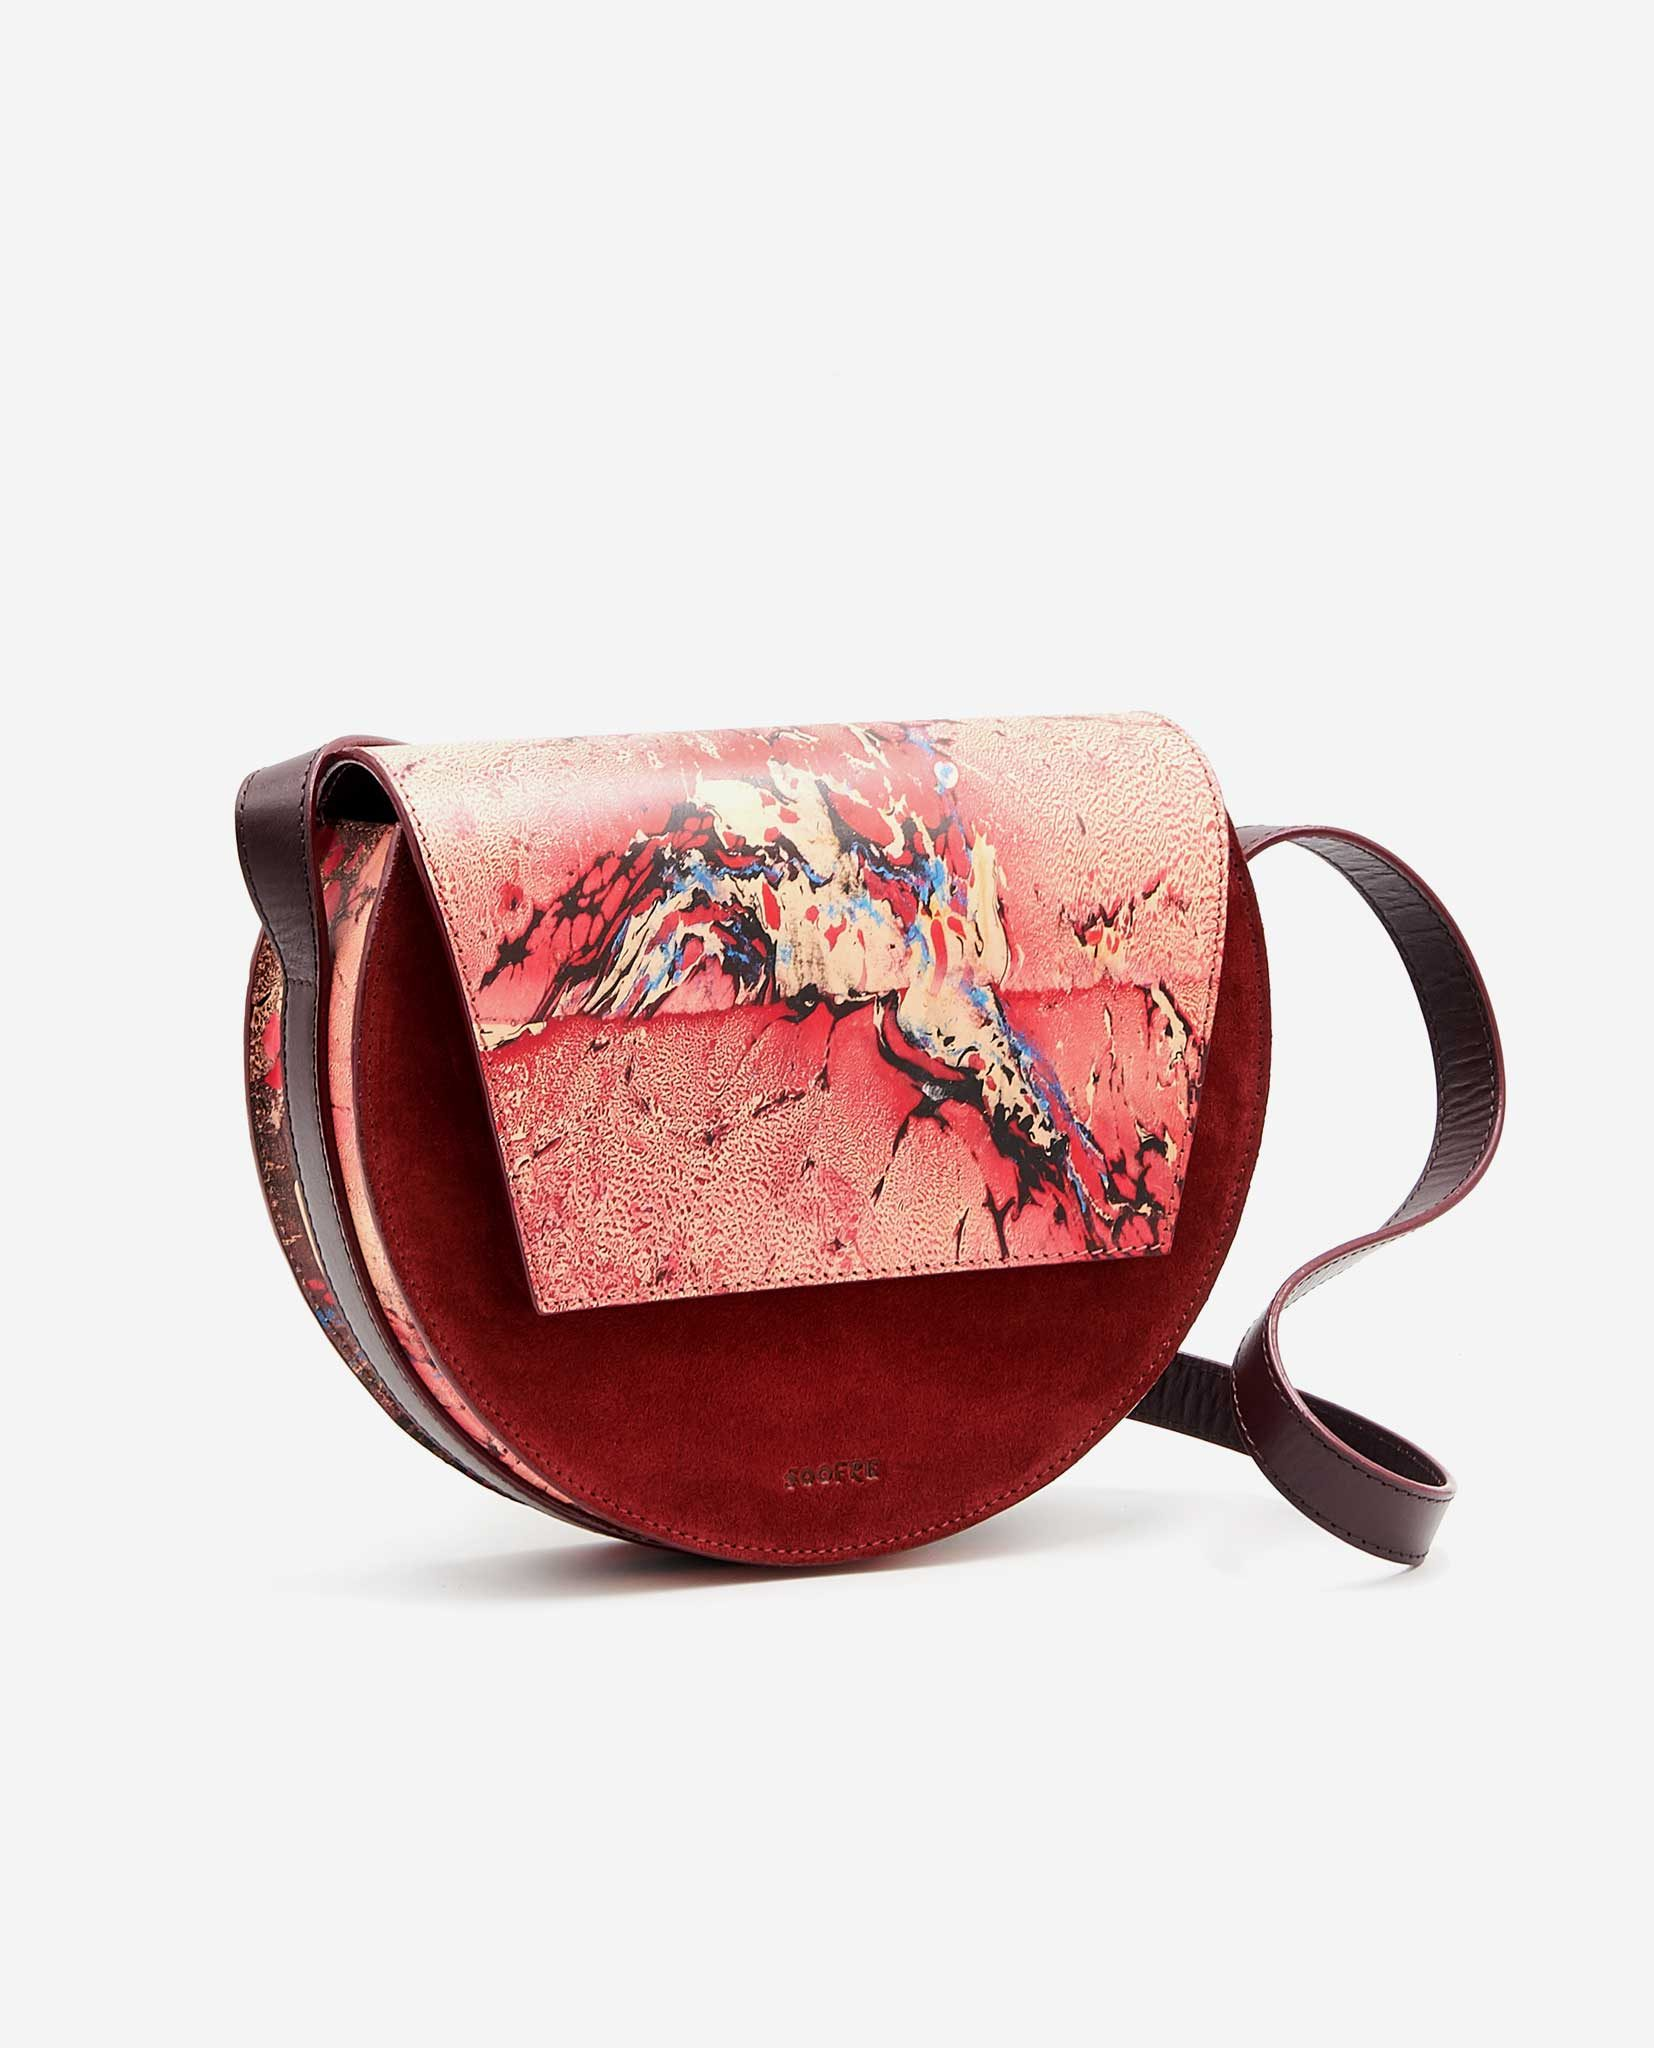 SOOFRE Berlin unique Crossbody Purse marble red burgundy